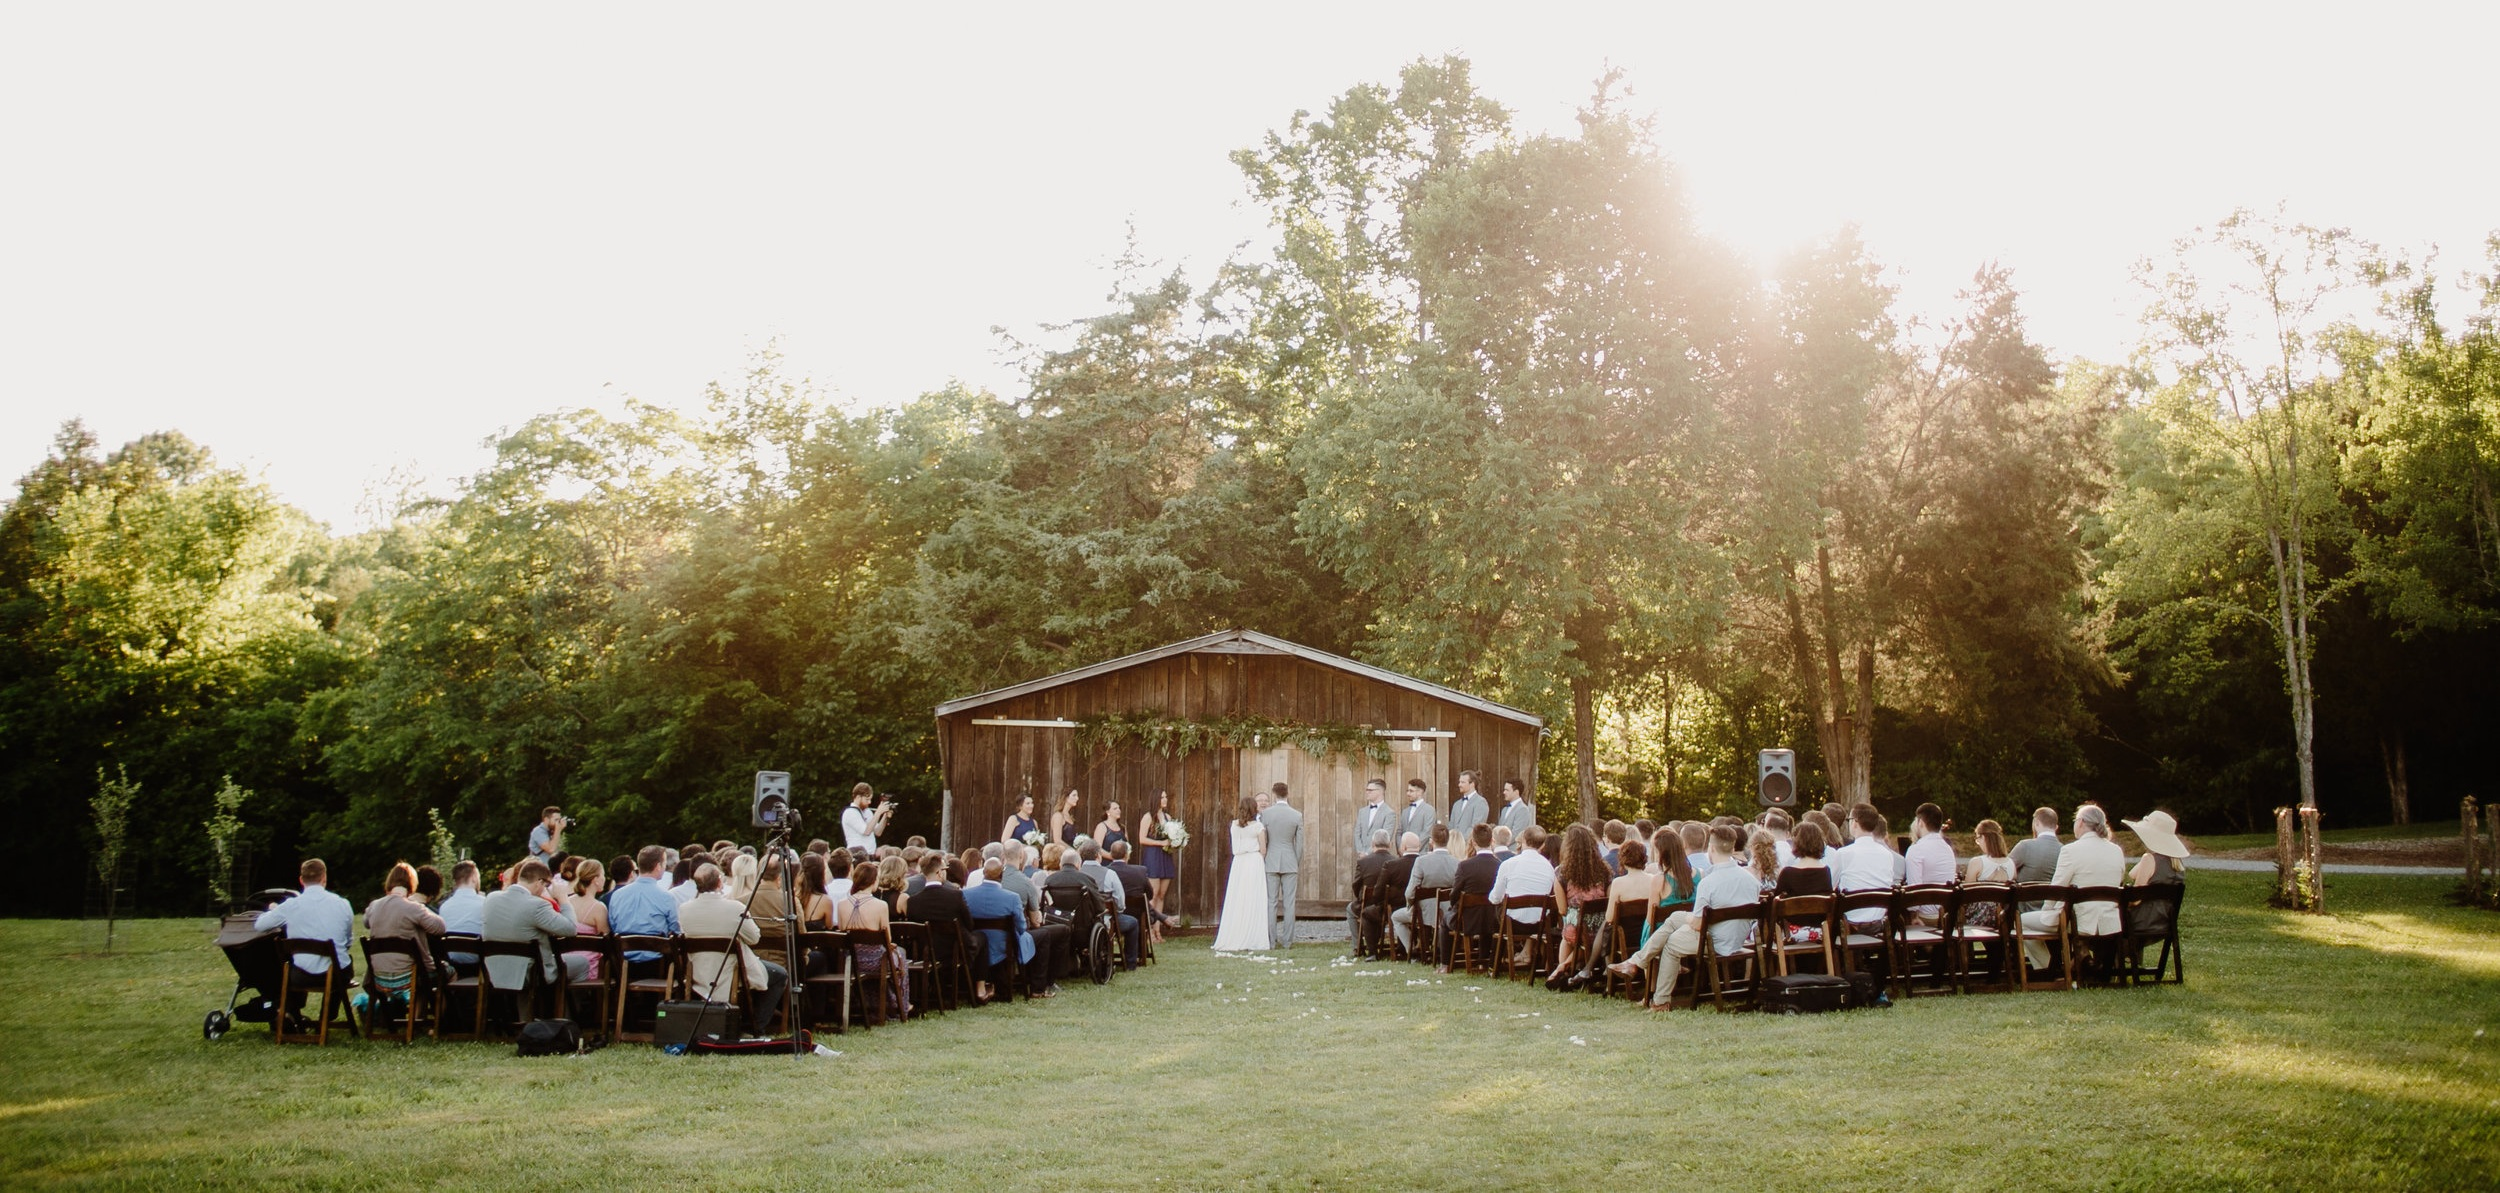 Barn-side-outdoor-wedding-venue.jpg